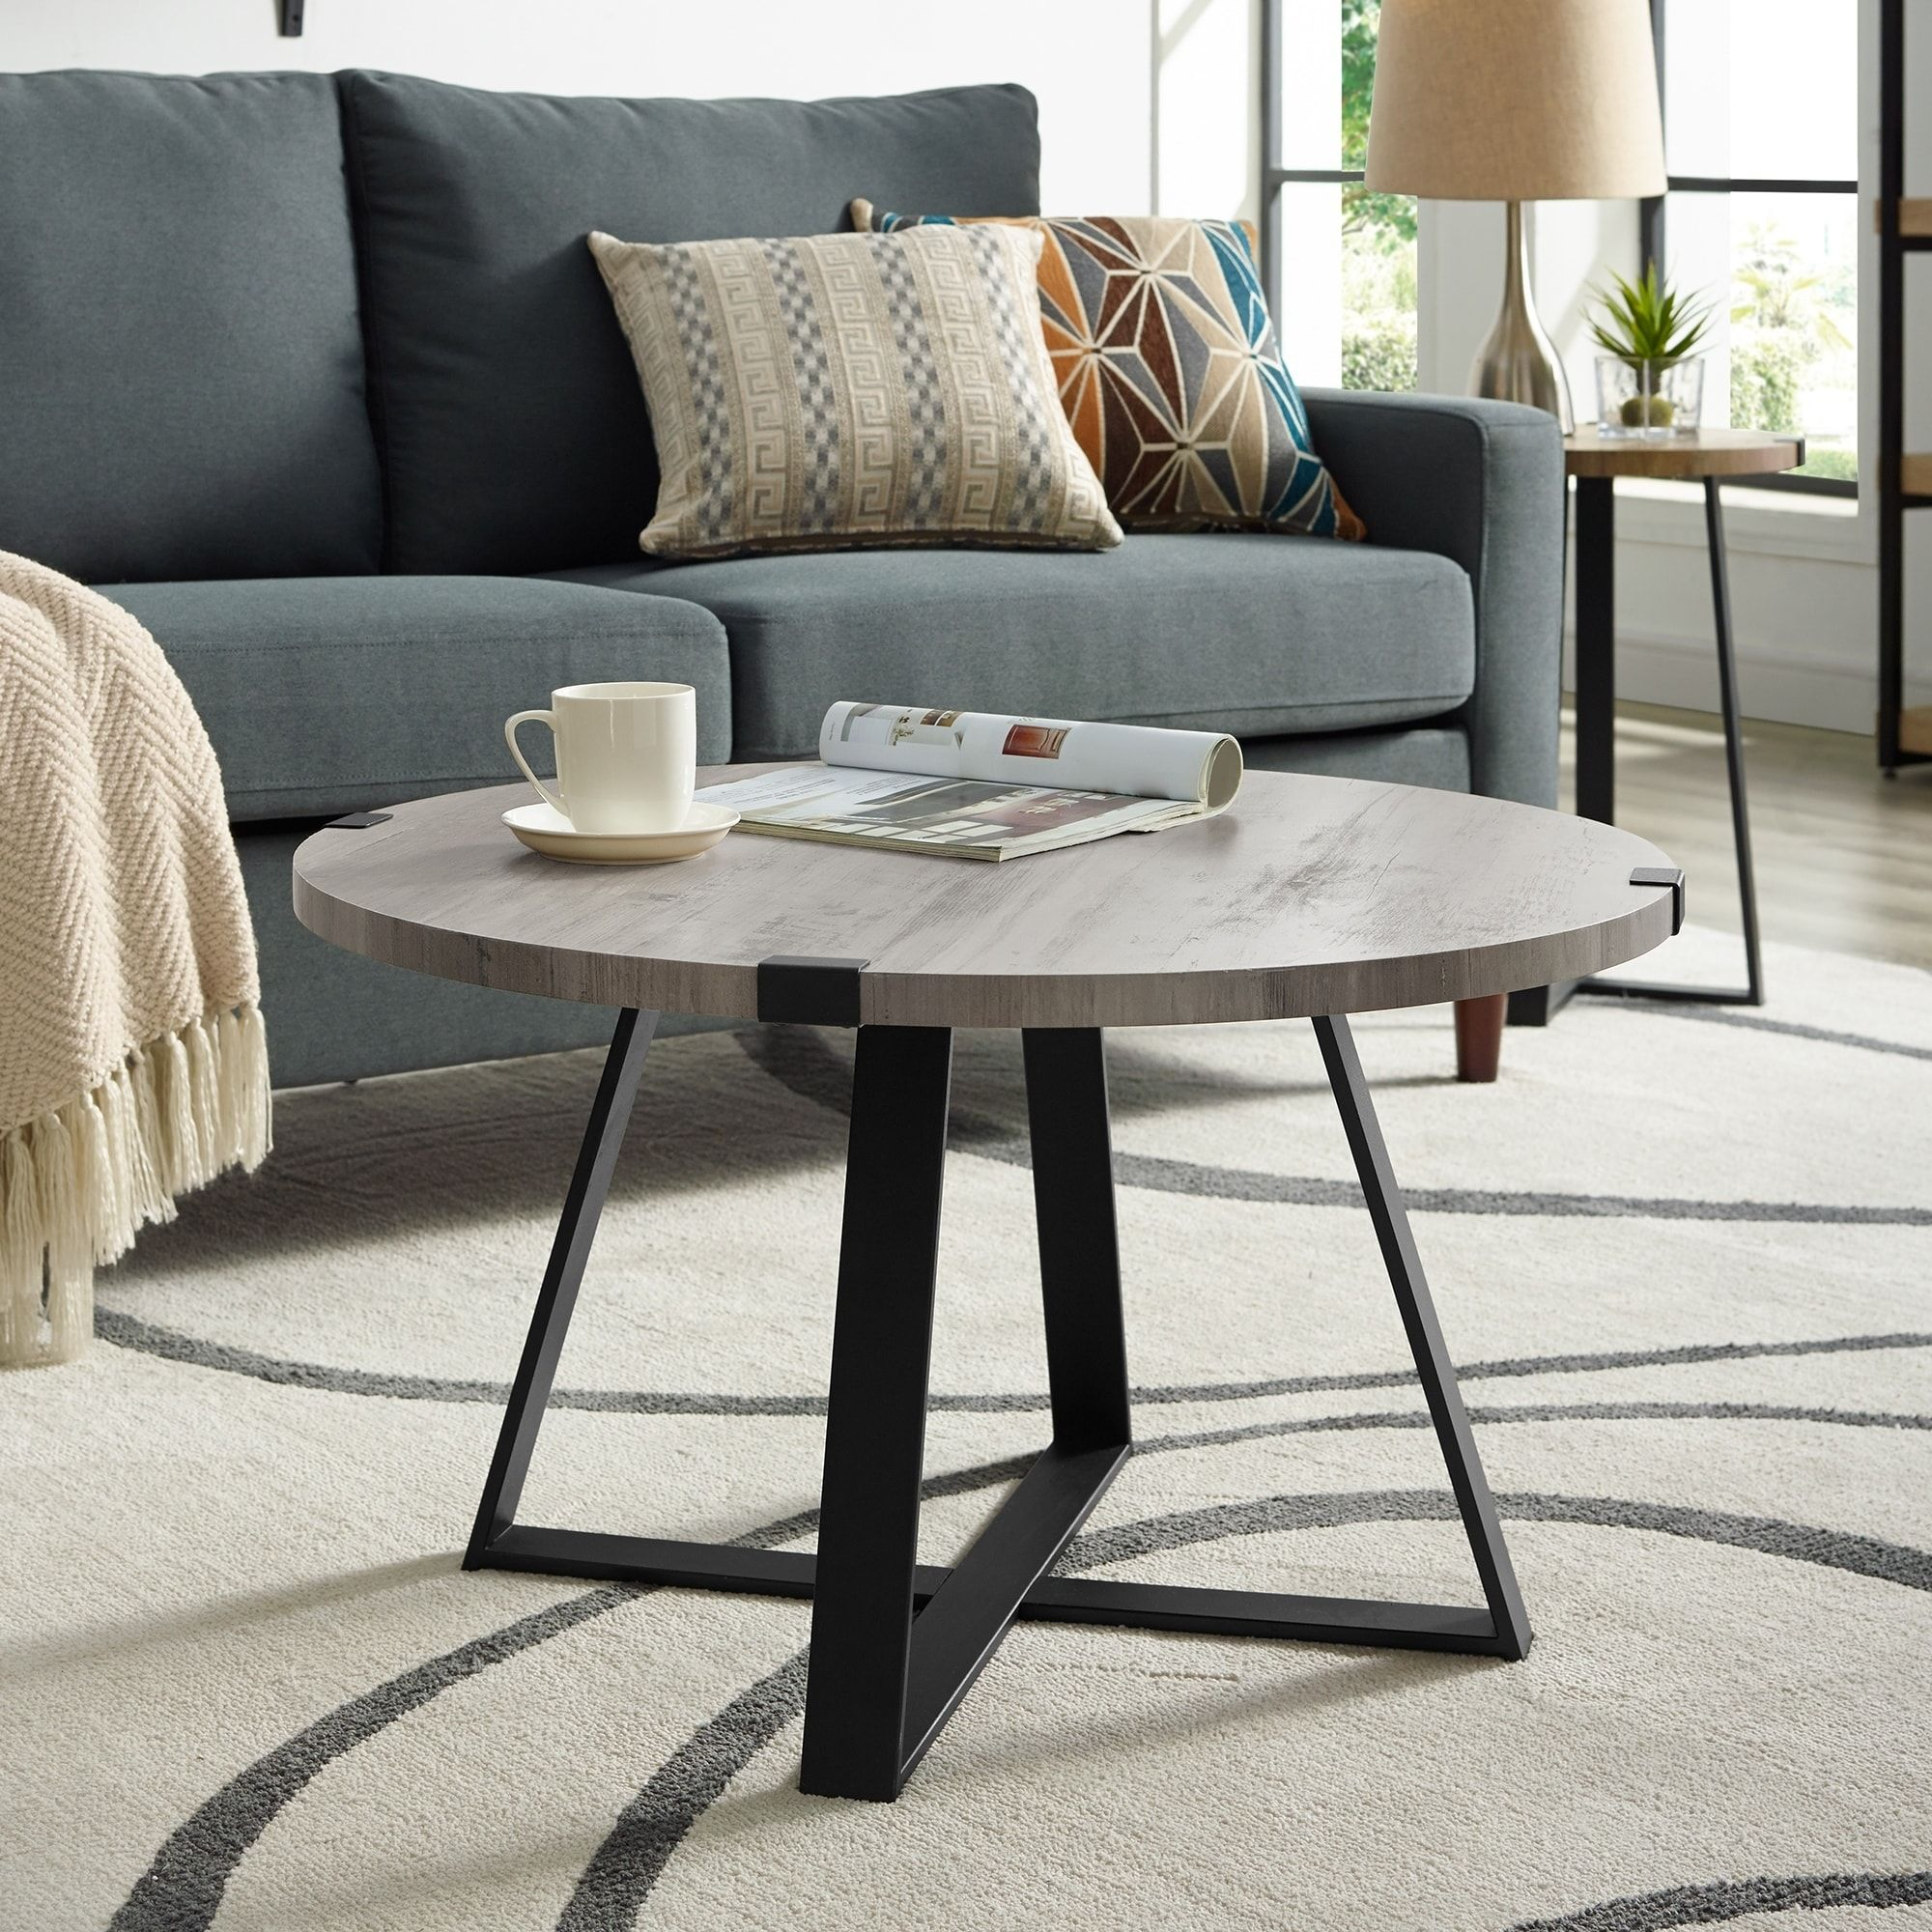 Overstock Com Online Shopping Bedding Furniture Electronics Jewelry Clothing More Coffee Table Coffee Table Grey Round Coffee Table Decor [ 2000 x 2000 Pixel ]